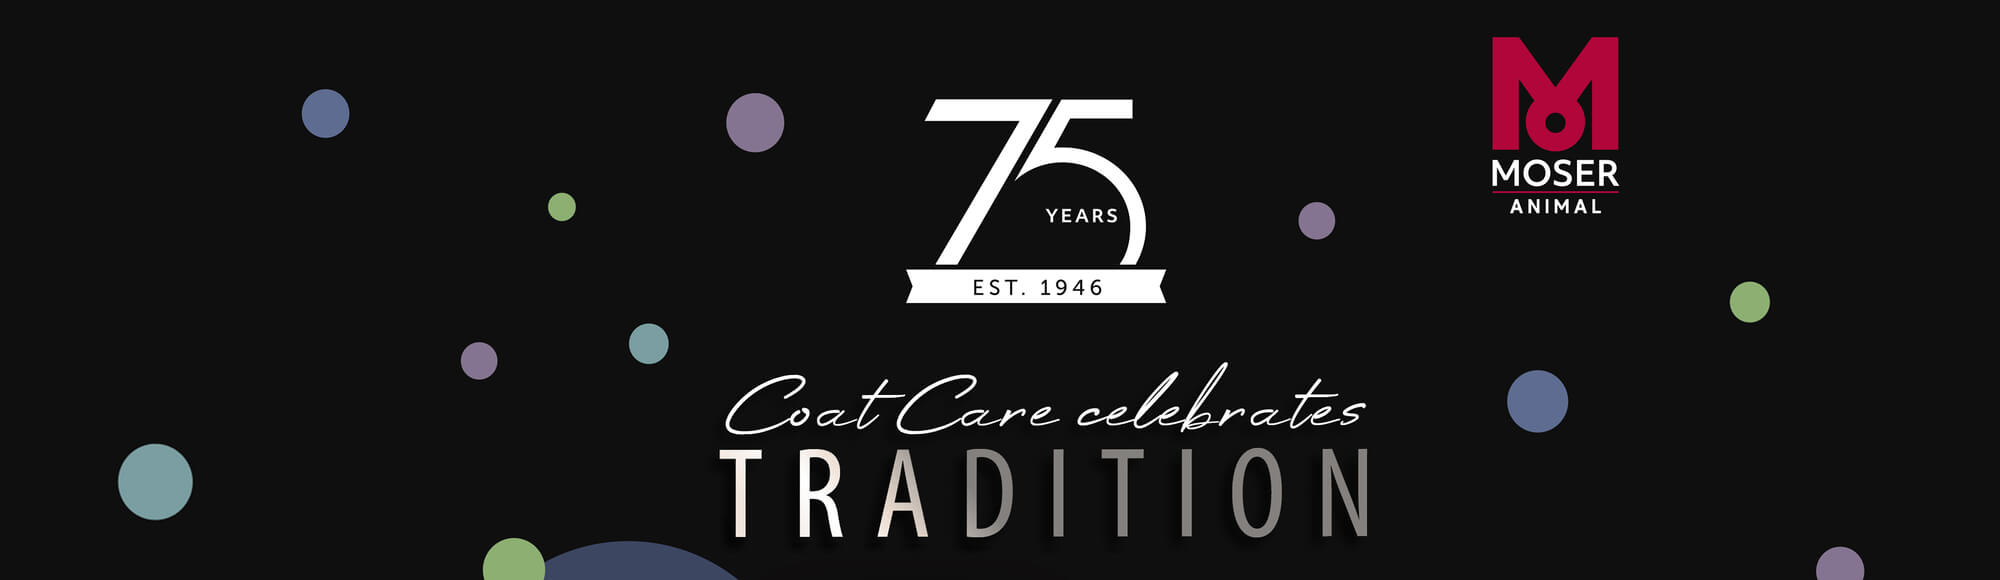 Check out our anniversary page!